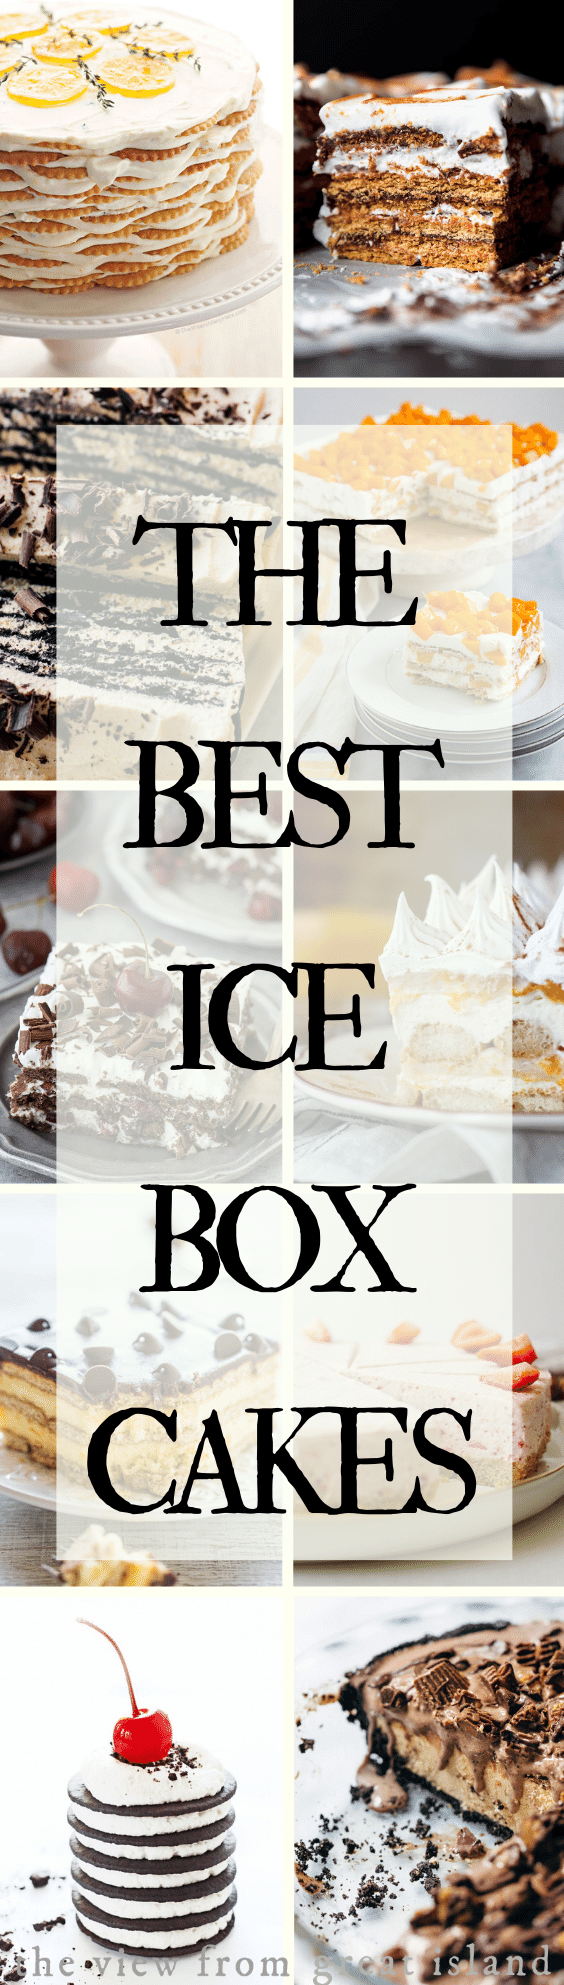 Best ice box cakes pin